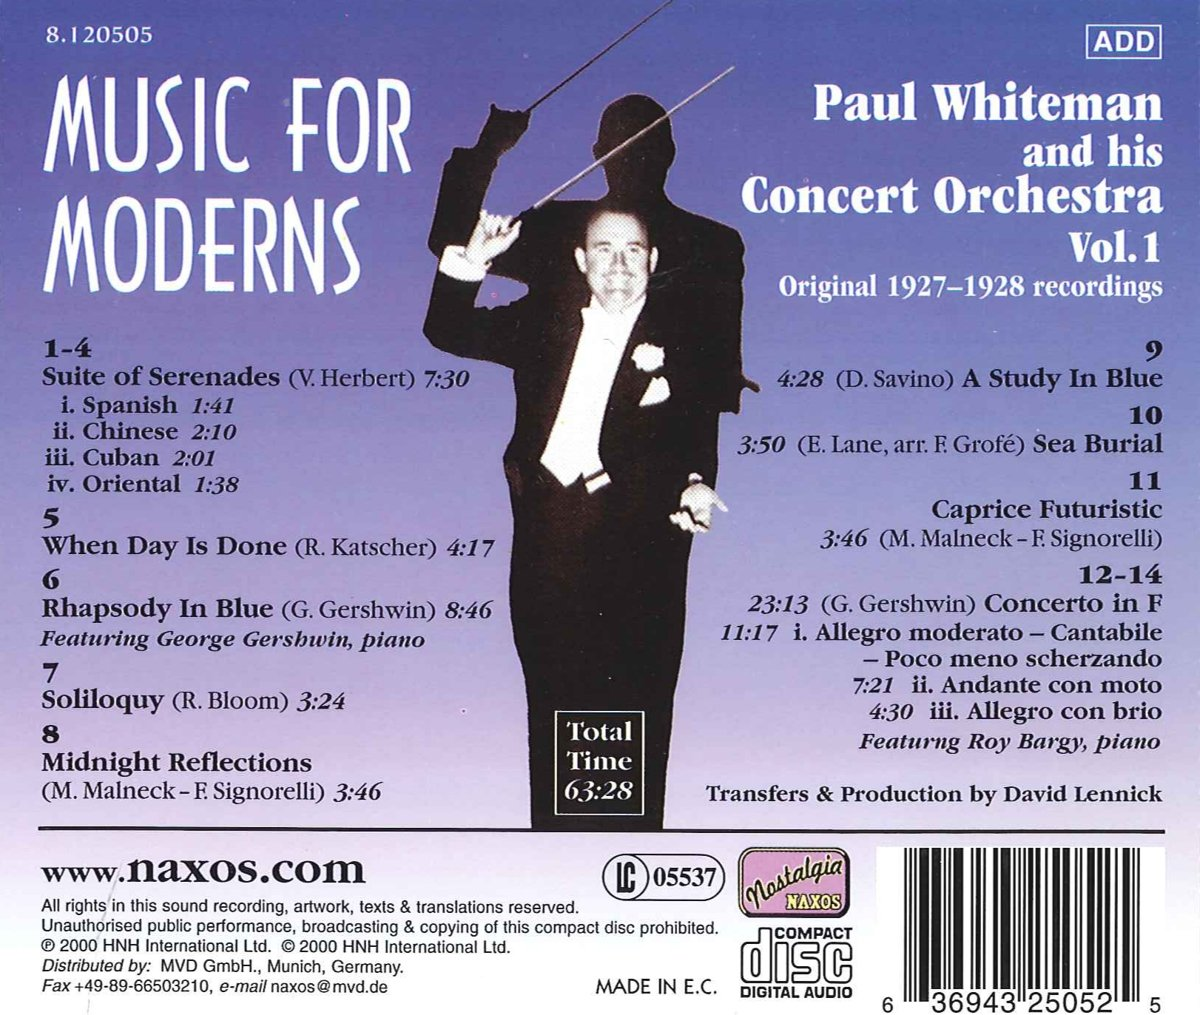 Music for Moderns: Paul Whiteman and His Concert Orchestra, Vol. 1: Original 1927-1928 Recordings